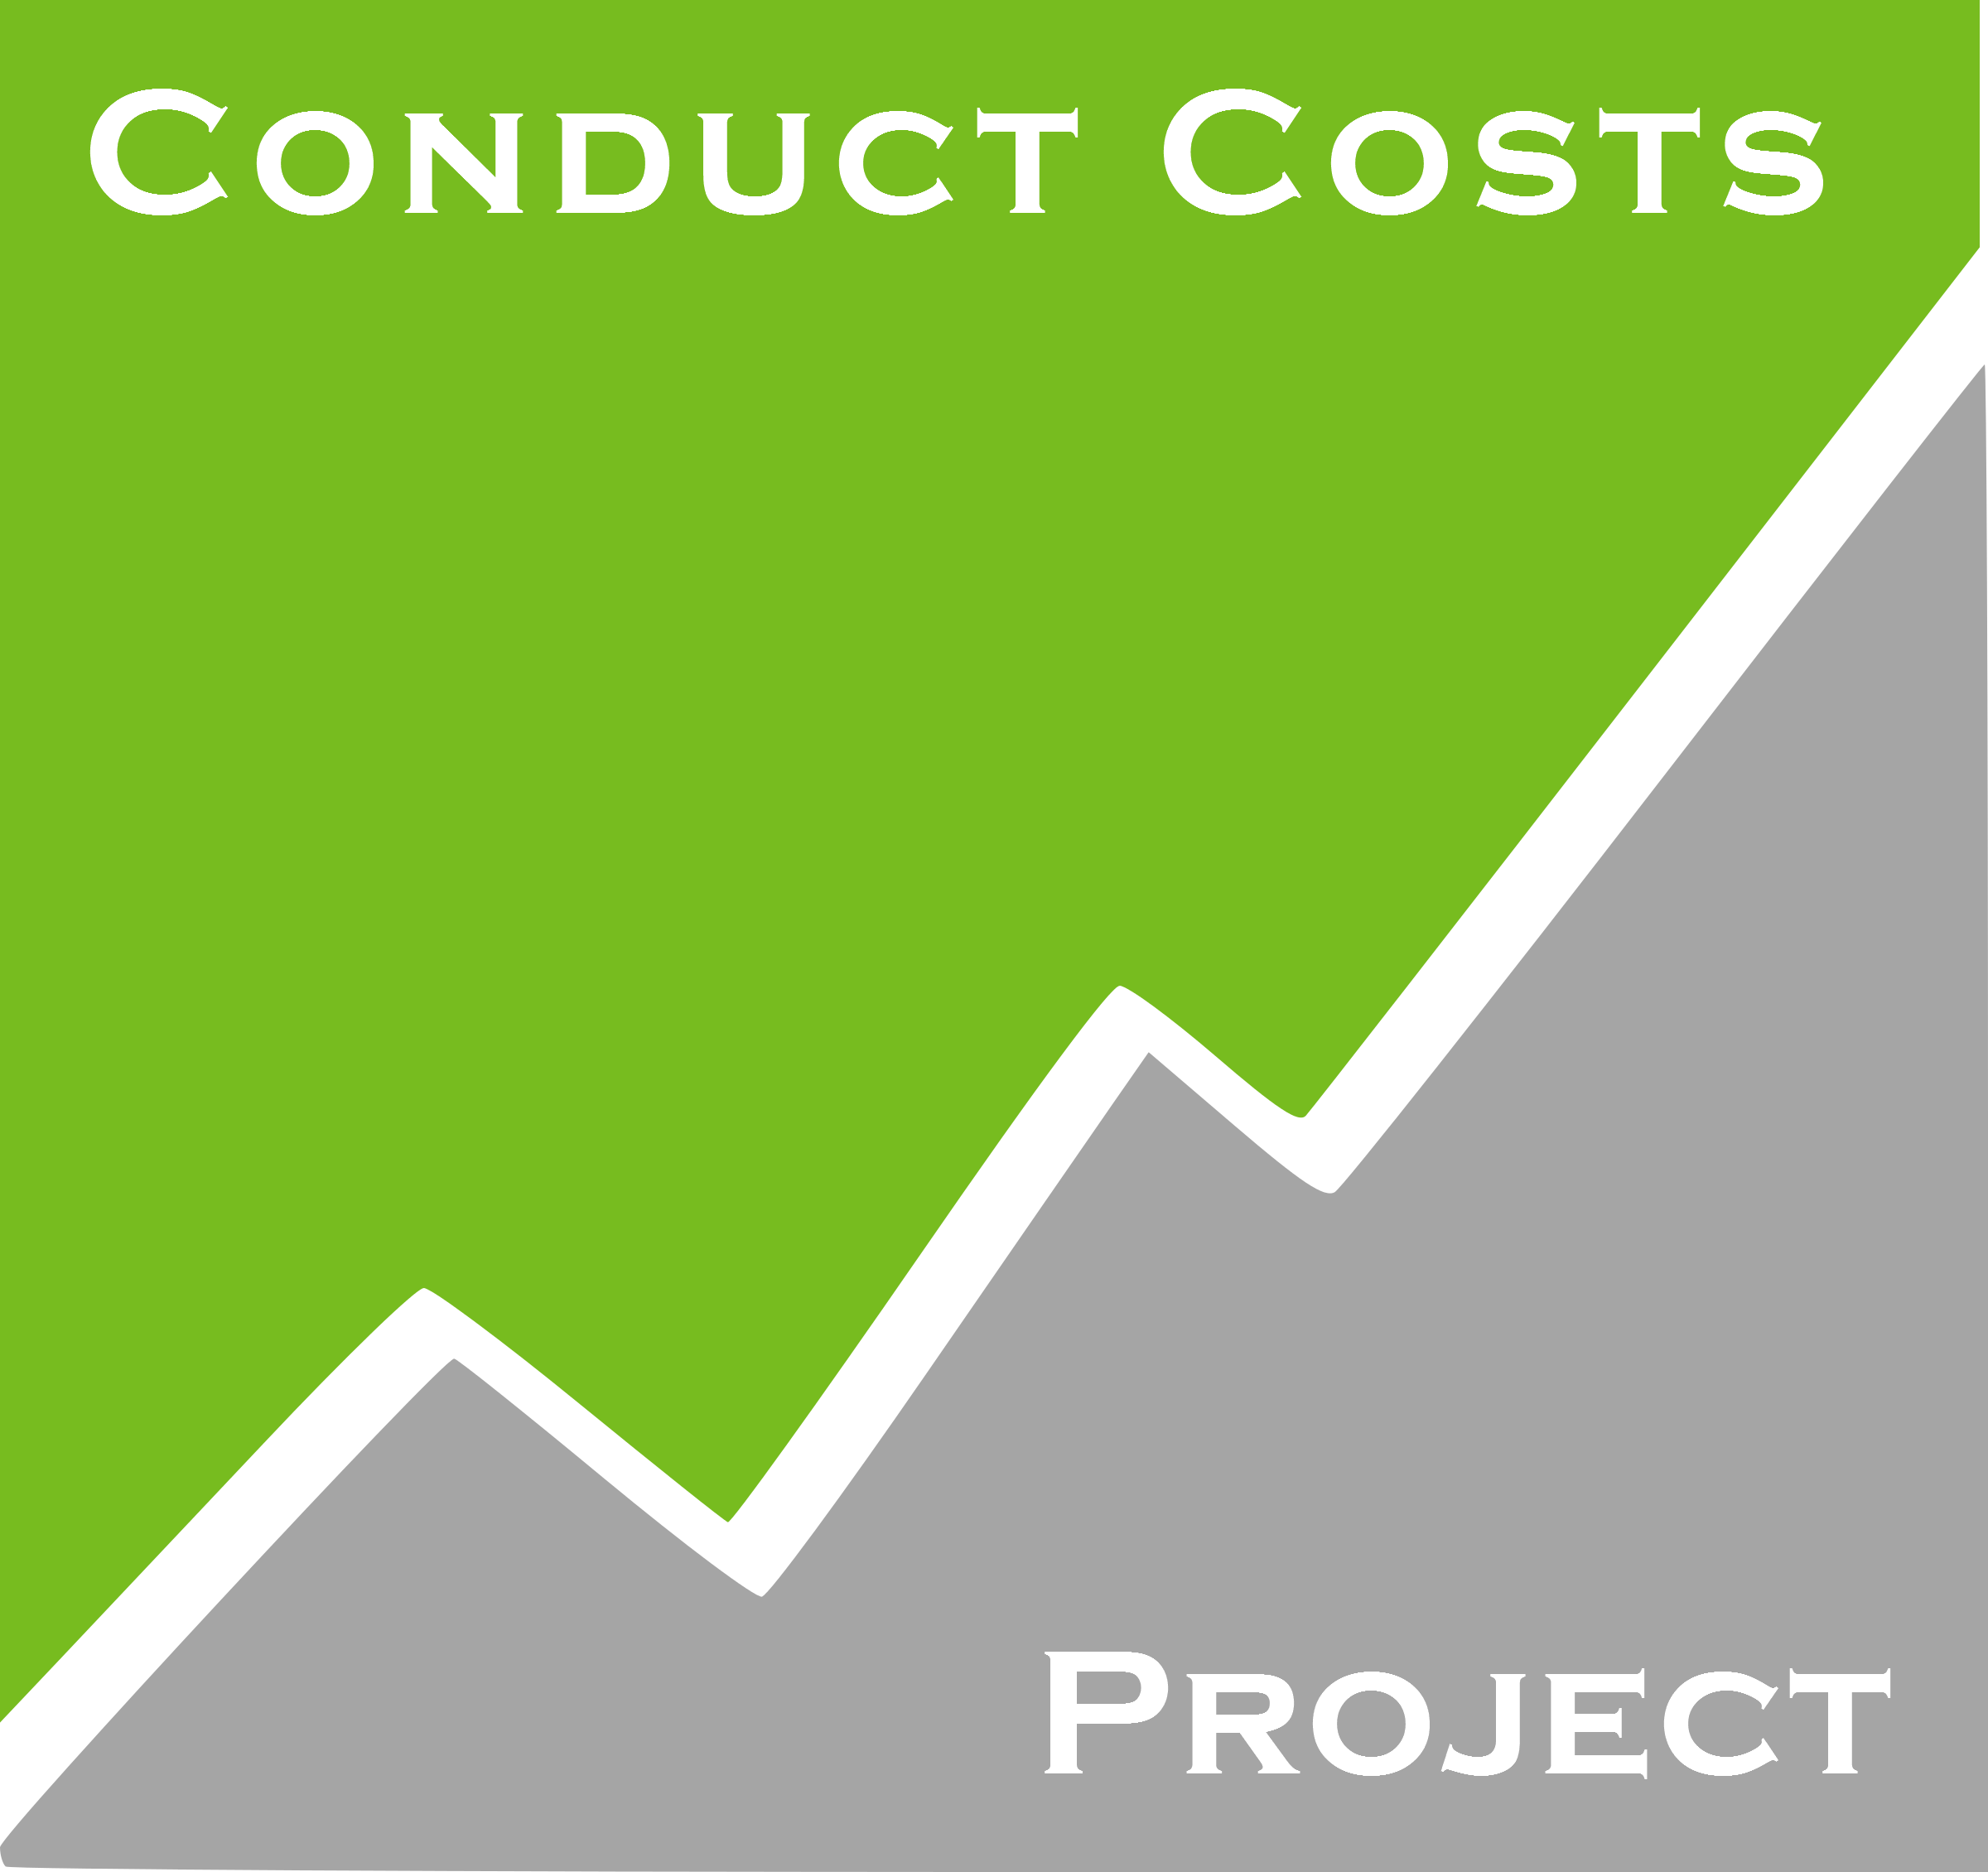 Conduct-costs-project-logo